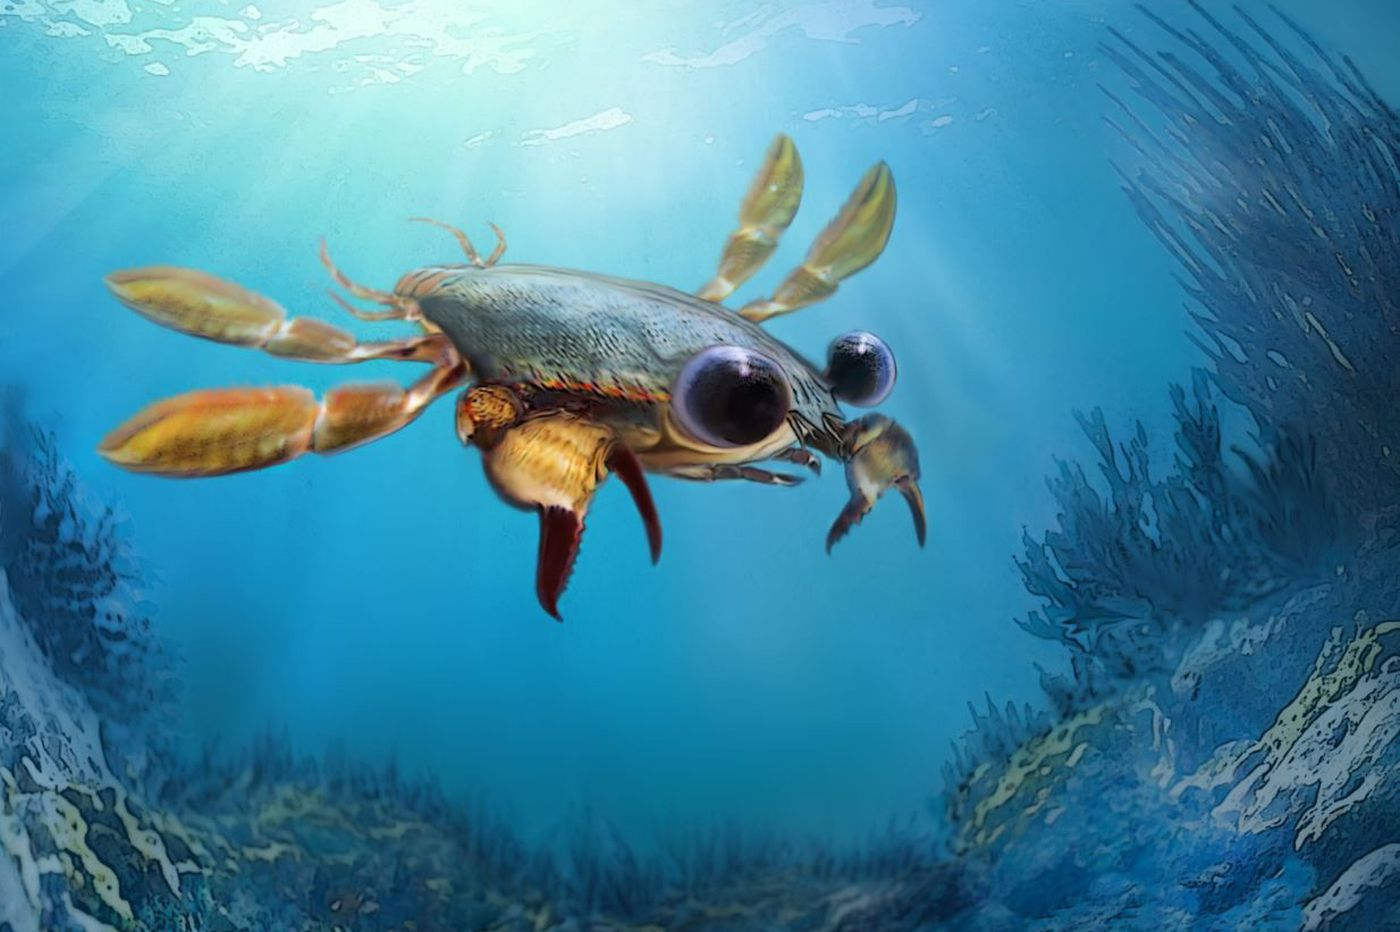 Yale paleontologist discovers new 95 million-year-old crab species